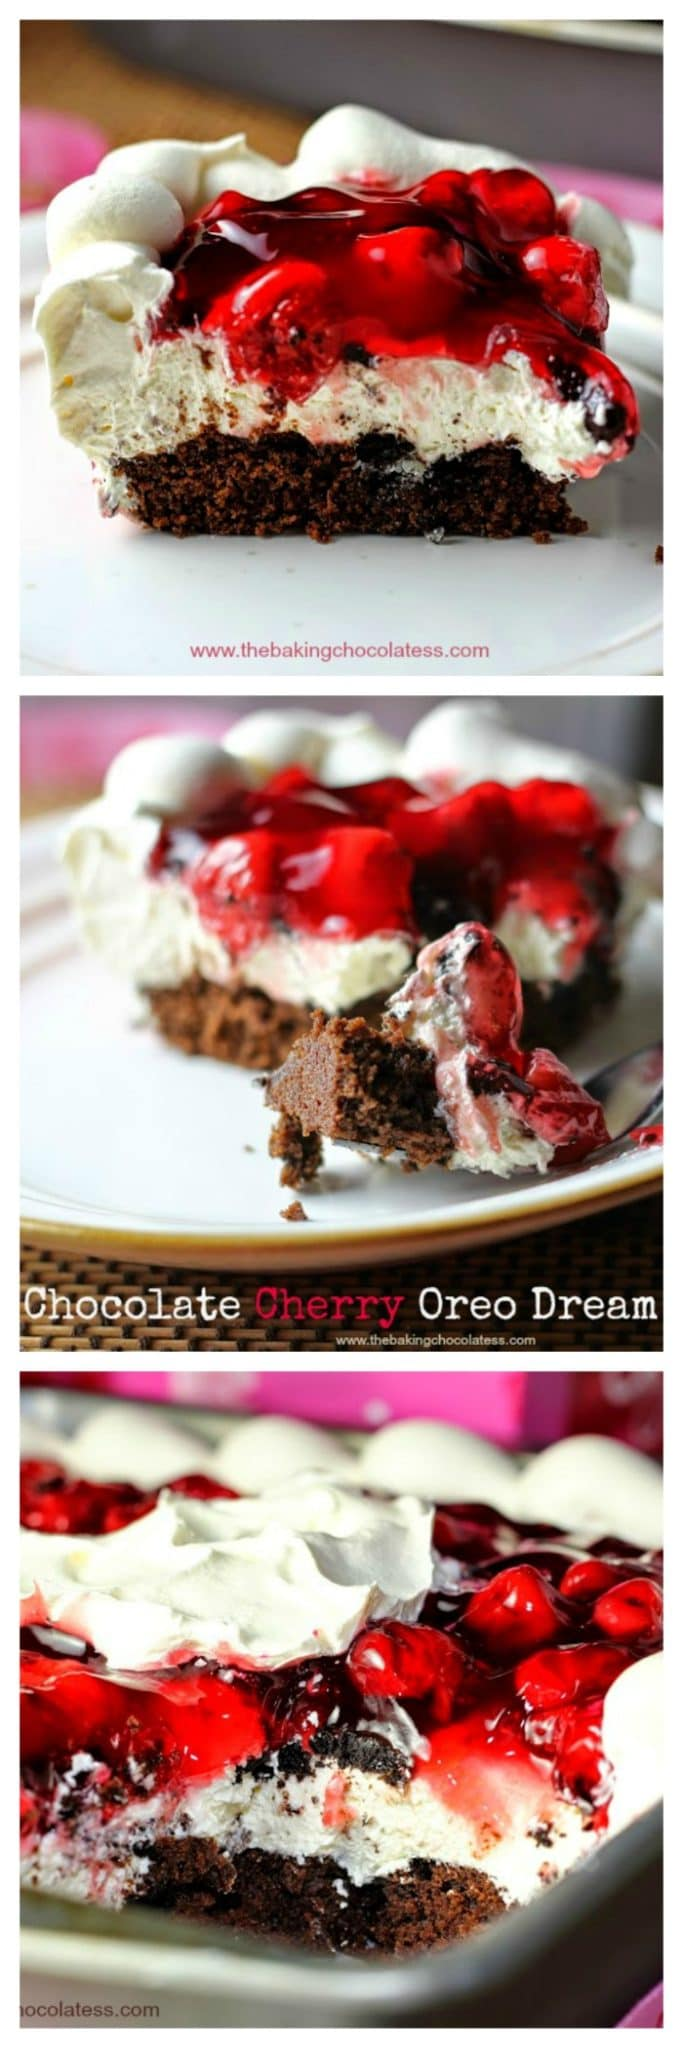 Chocolate Cherry Oreo Dream Dessert